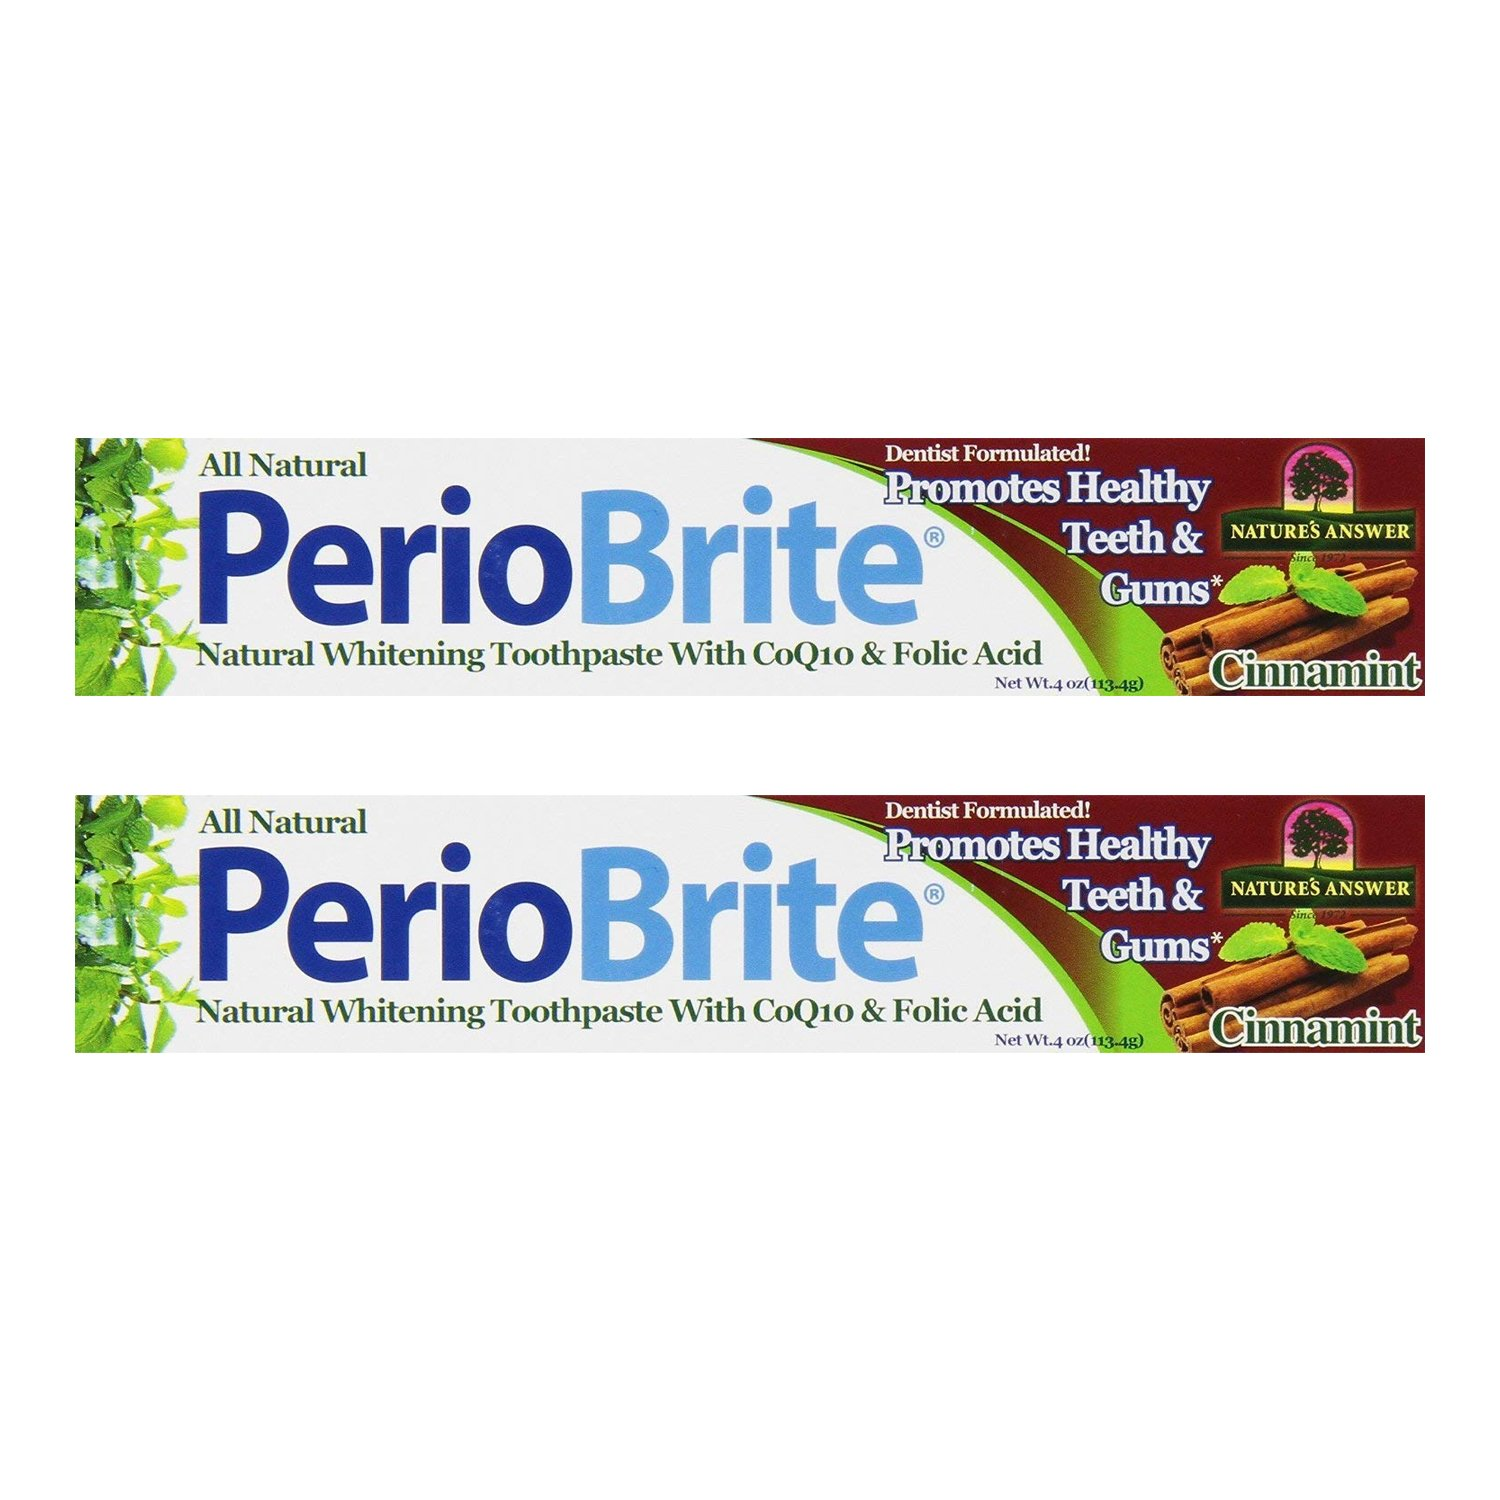 Natures Answer Periobrite Cinnamint Toothpaste - 4 Ounces, 2 Pack